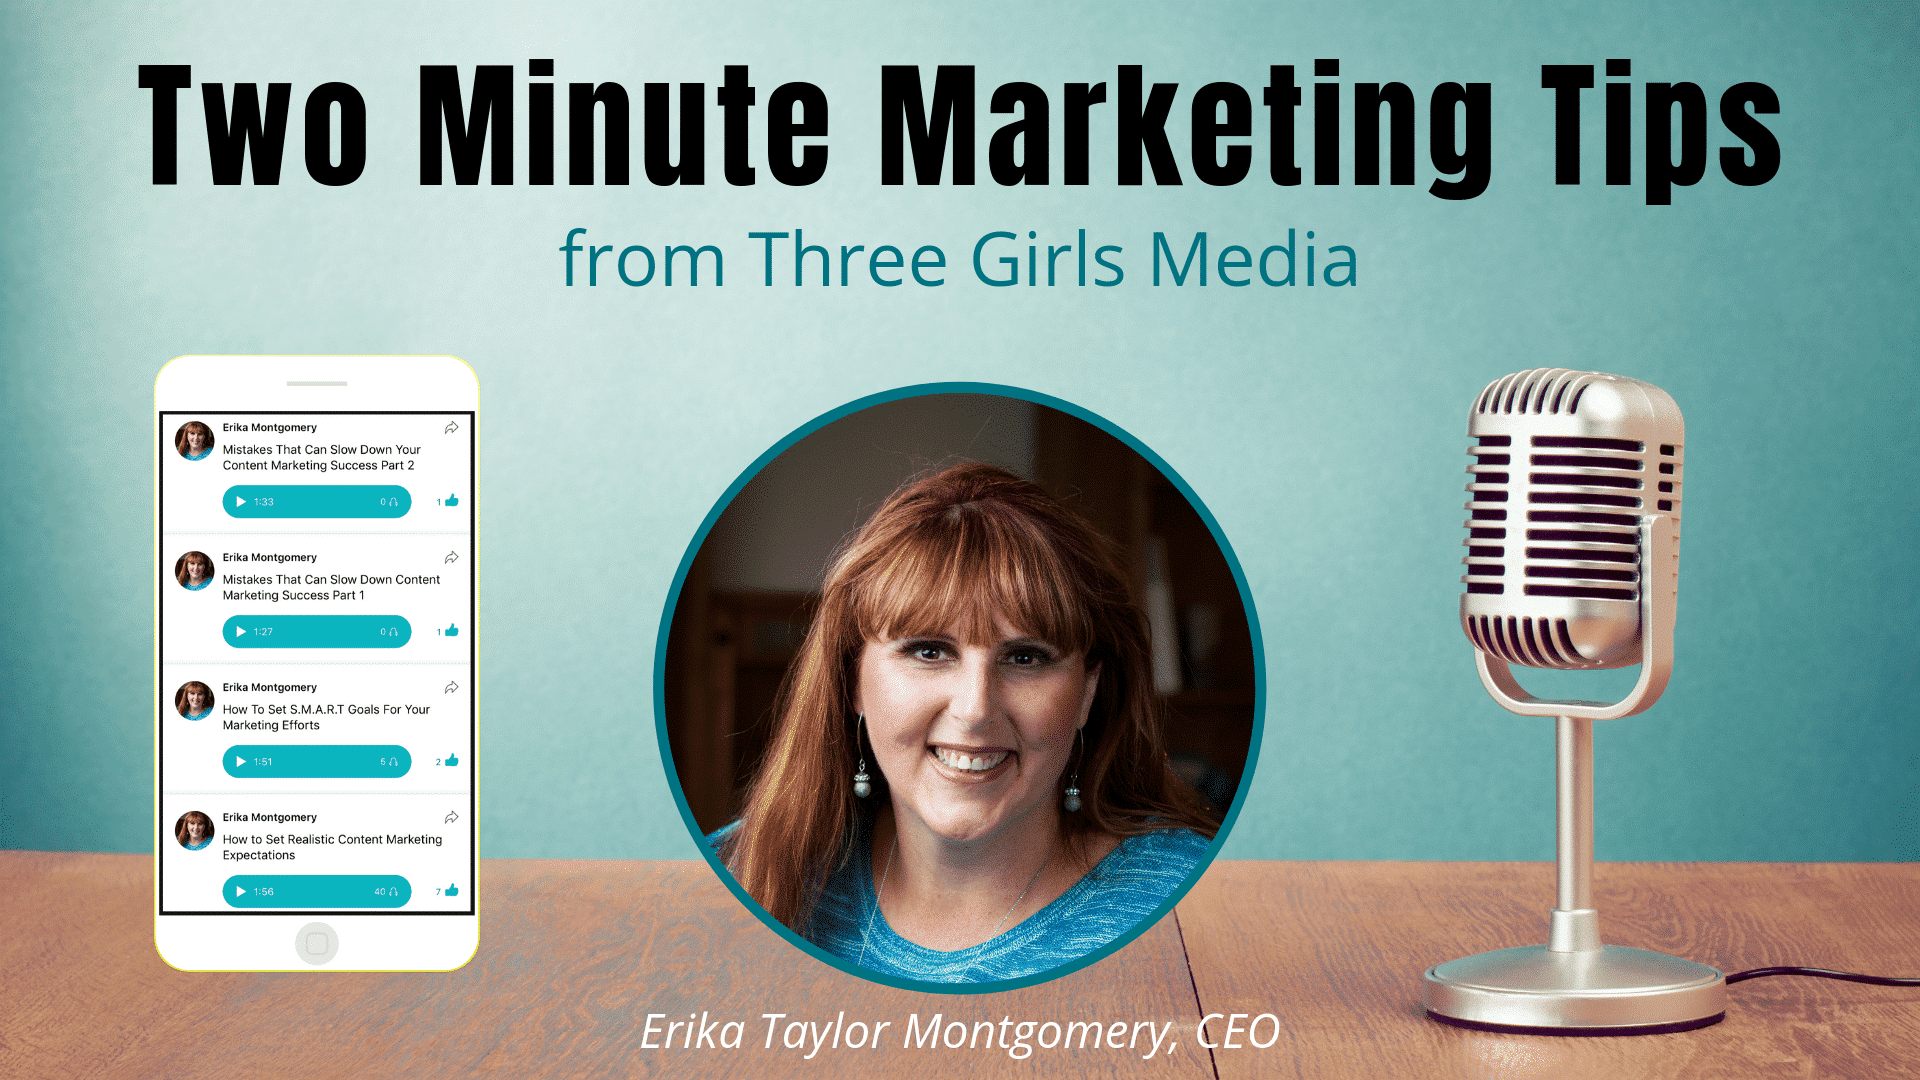 Two Minute Marketing Tips: The Who, What, Where, When and Why of Marketing